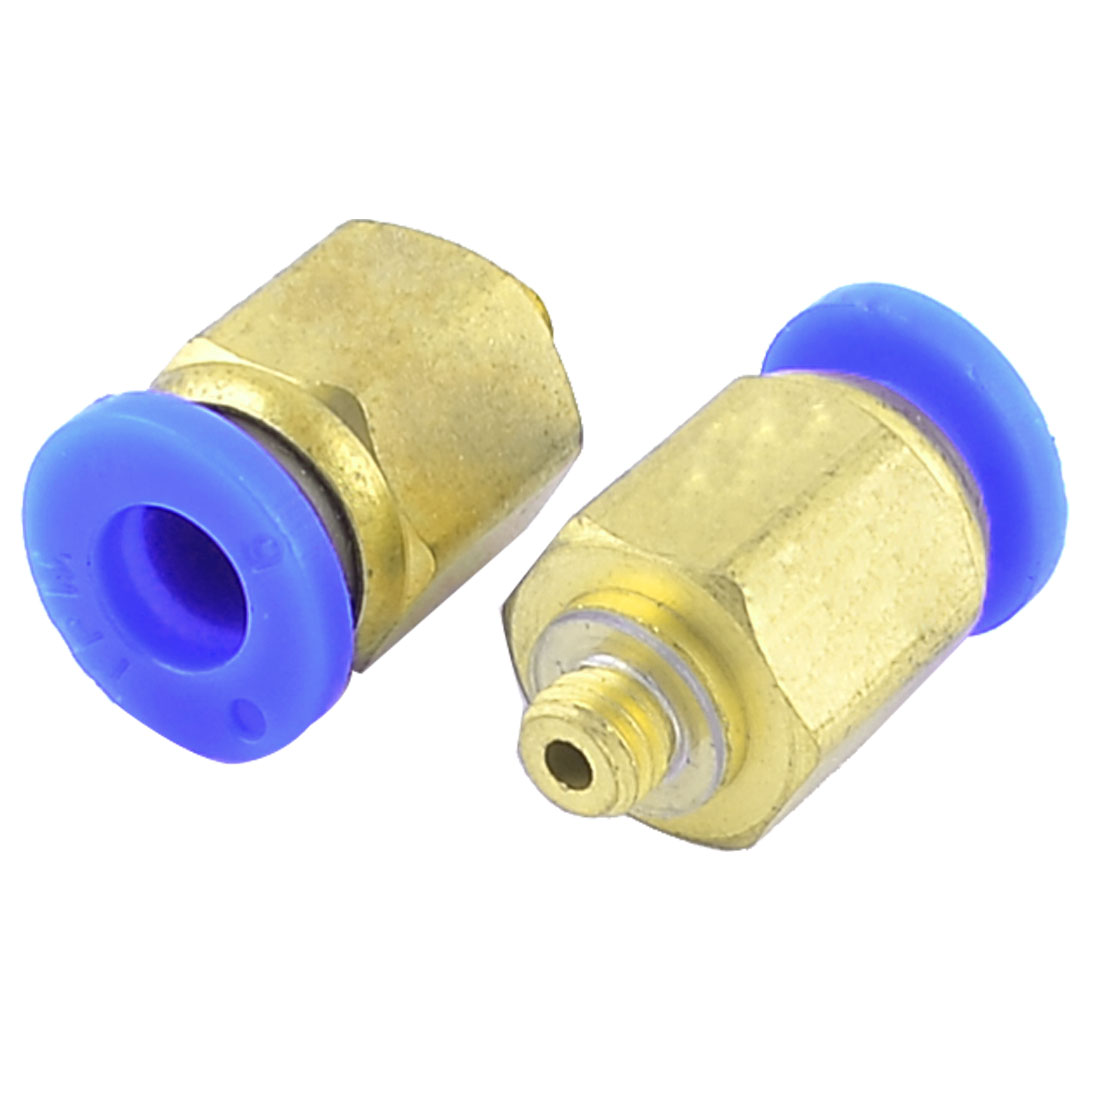 6mm x 5mm Threaded Pneumatic Straight Quick Joint Connector Coupler 2pcs